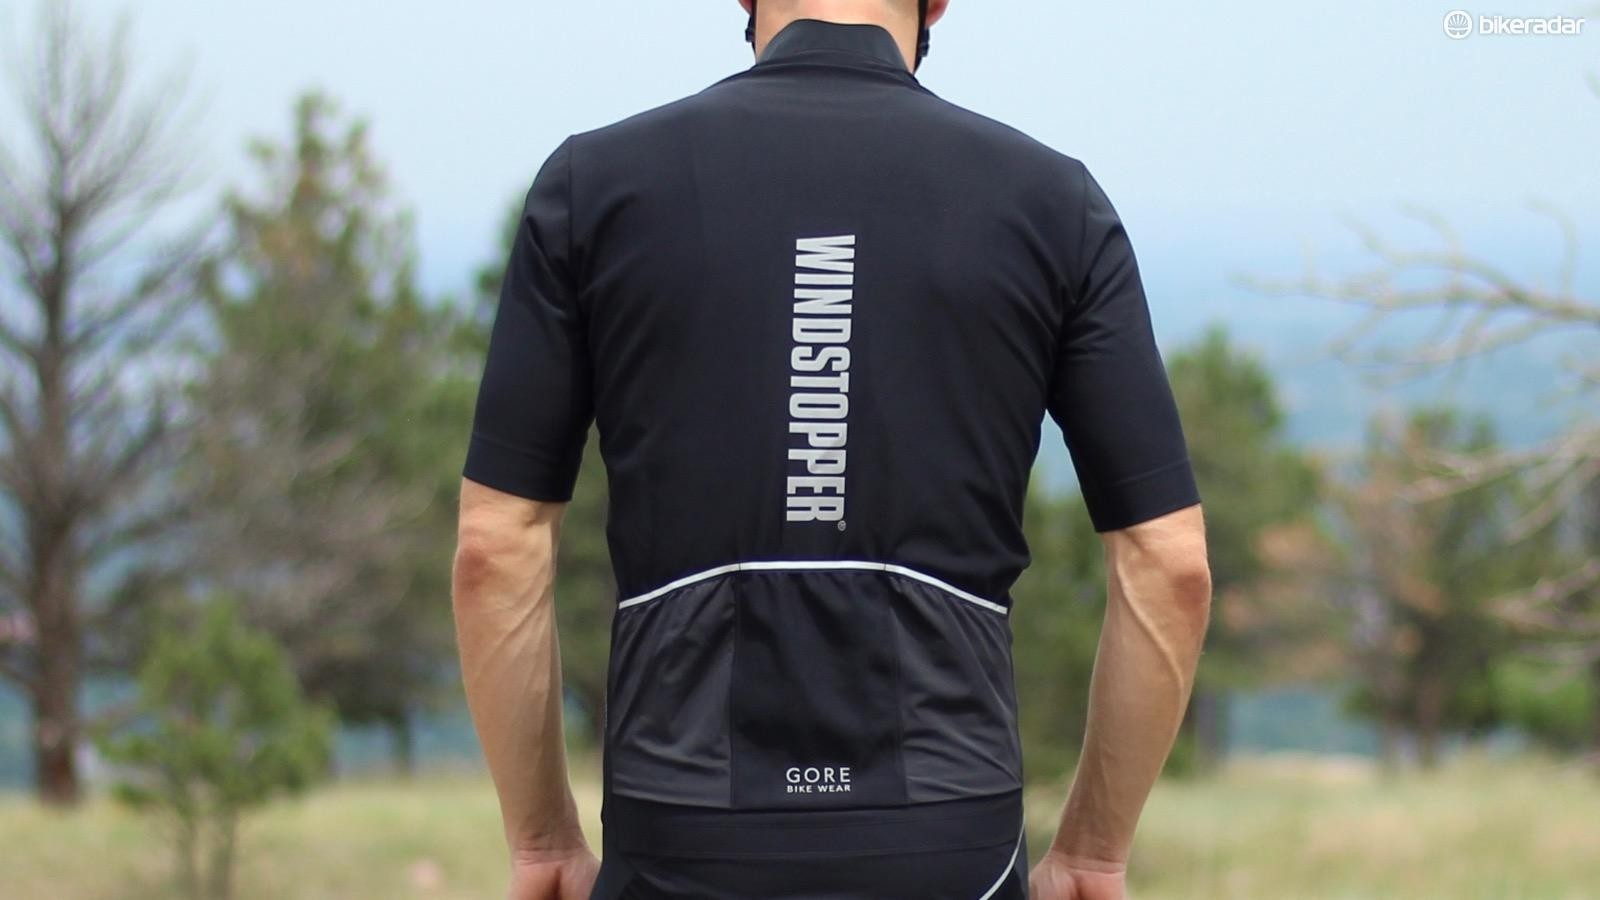 Gore's breathable windproof and water-resistent fabrics have literally redefined what we call parts of our cycling wardrobe